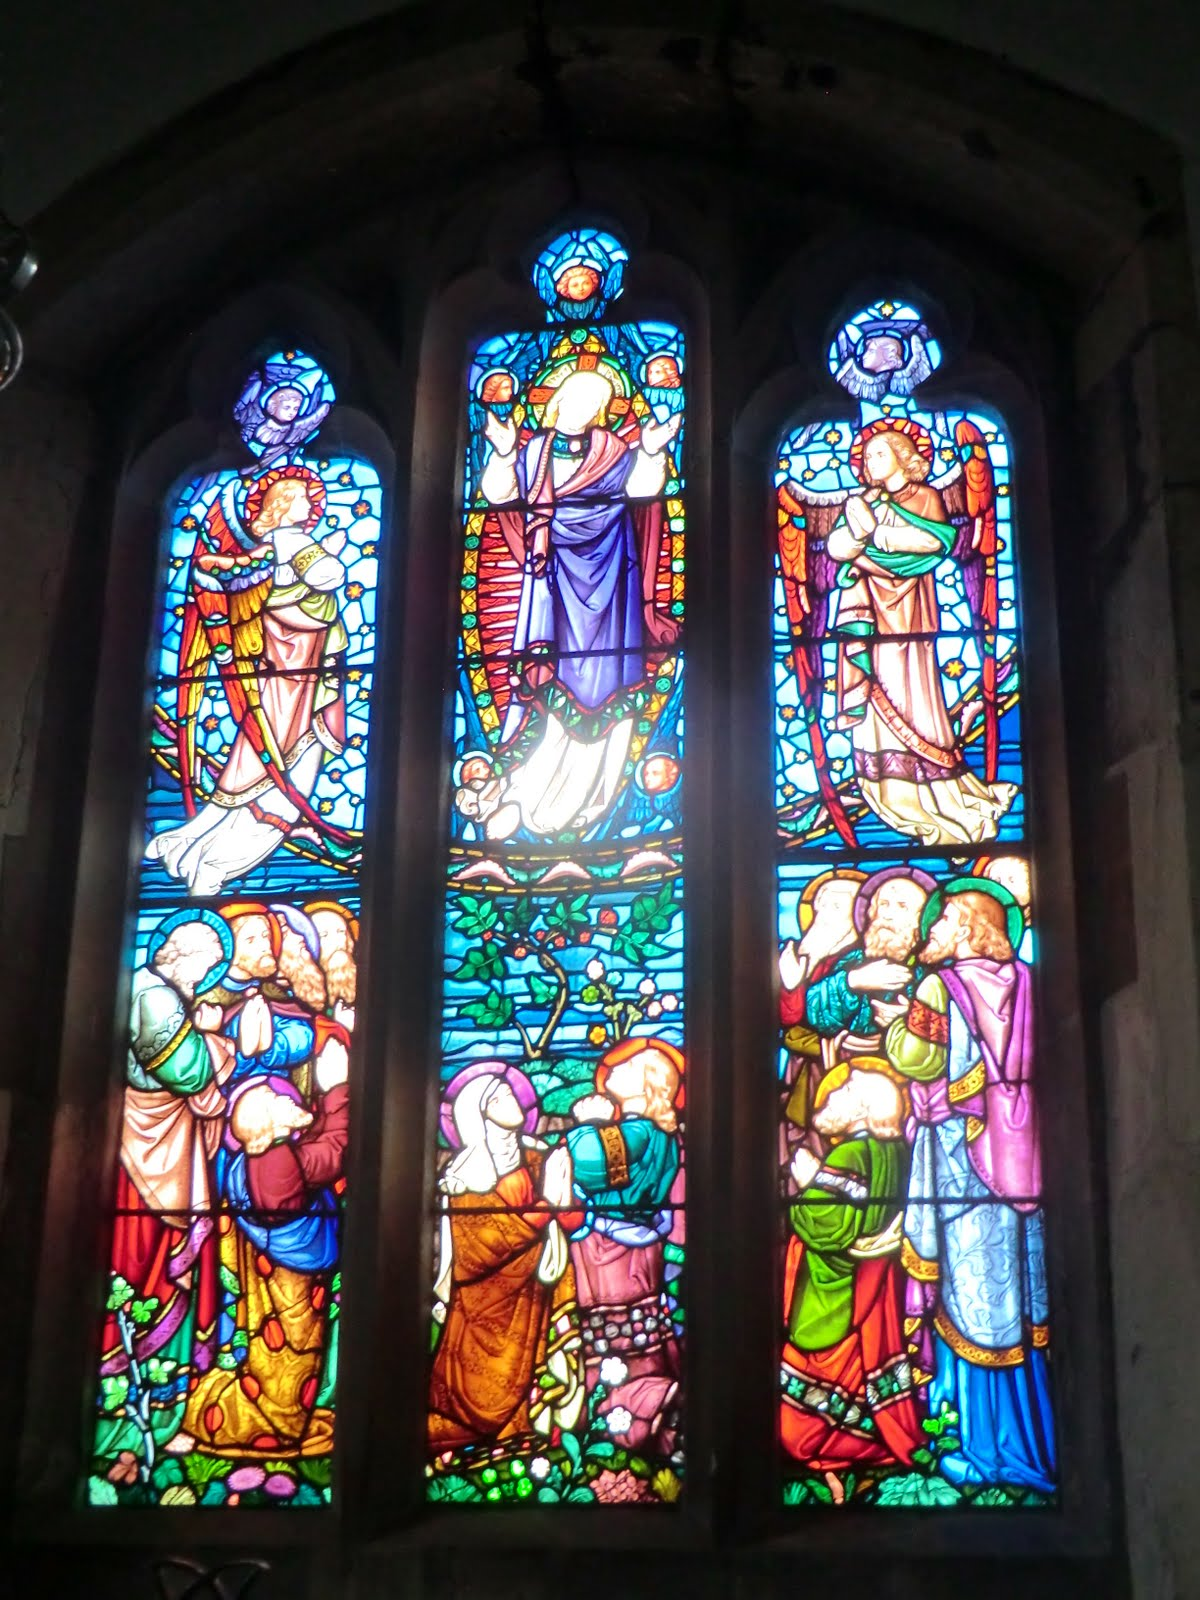 CIMG9869 Stained glass window in Cuxton church